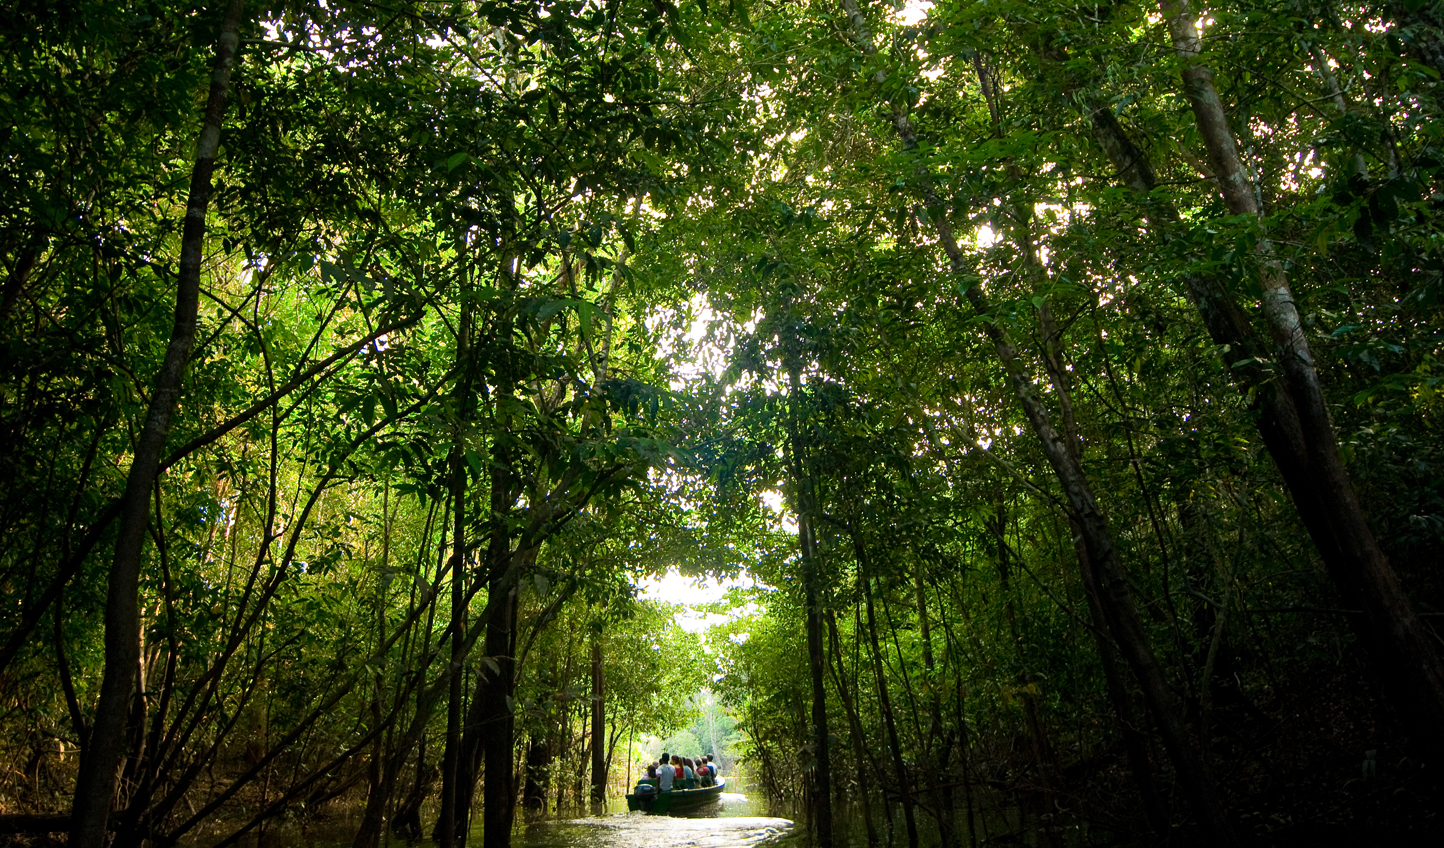 Take in the sights of the jungle from the Rio Negro